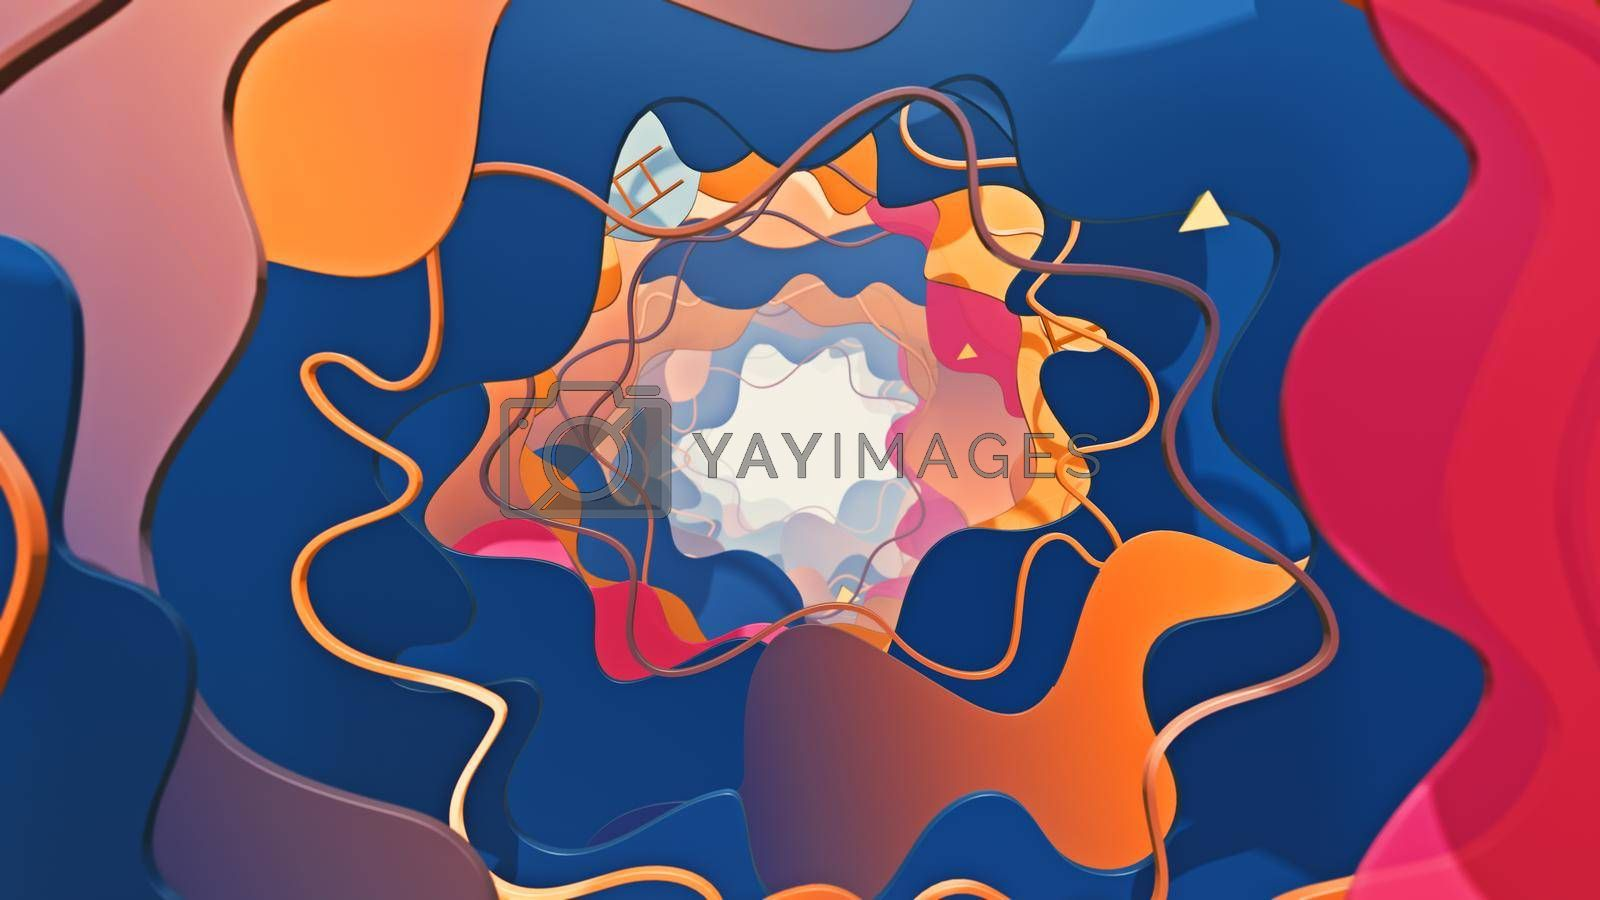 3D illustration Background for advertising and wallpaper in flat art style and abstract scene. 3D rendering in decorative concept